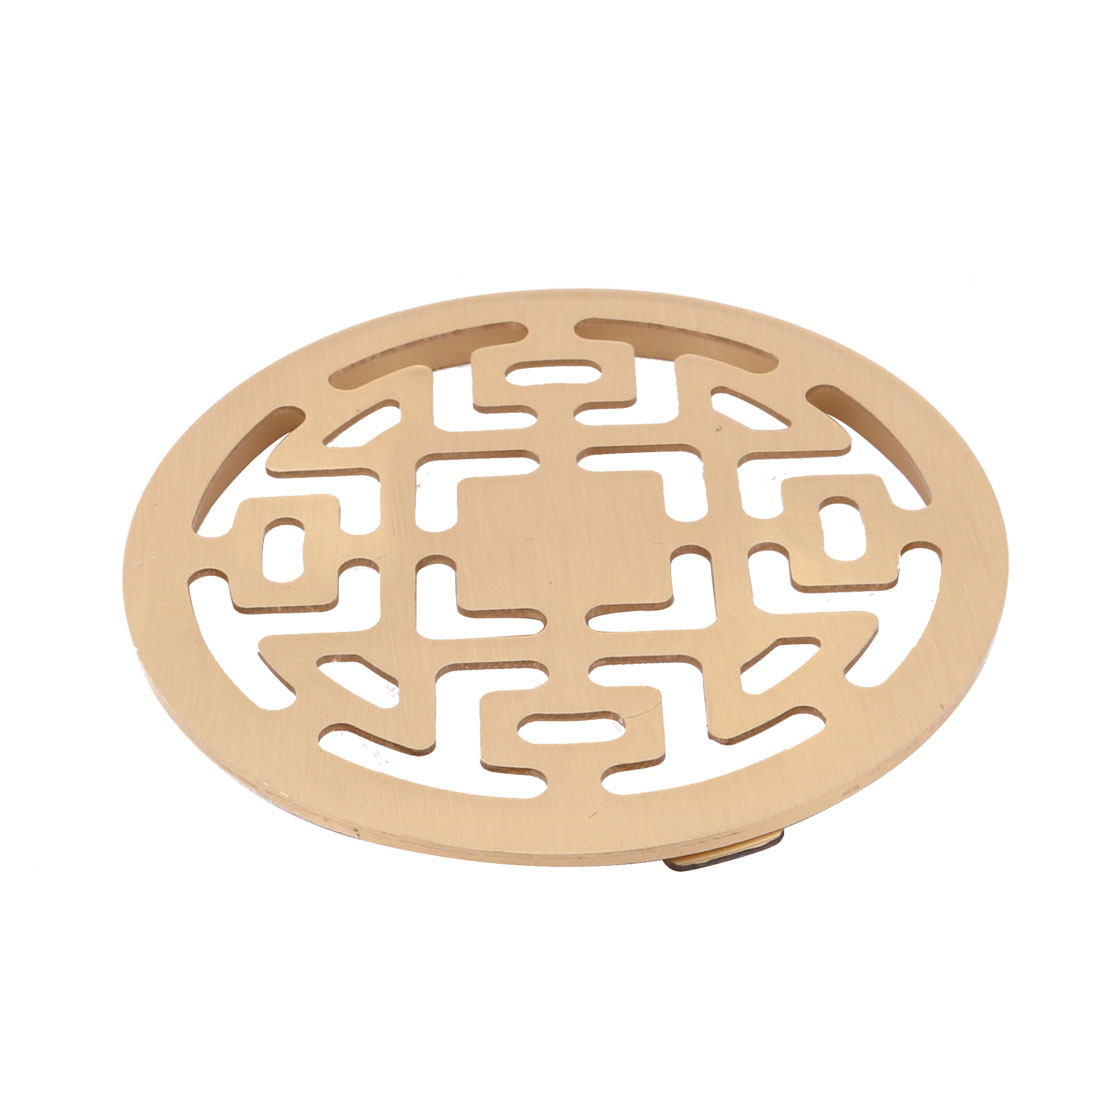 Washroom Stainless Steel Round Water Hair Filter Floor Drain Cover Gold Tone